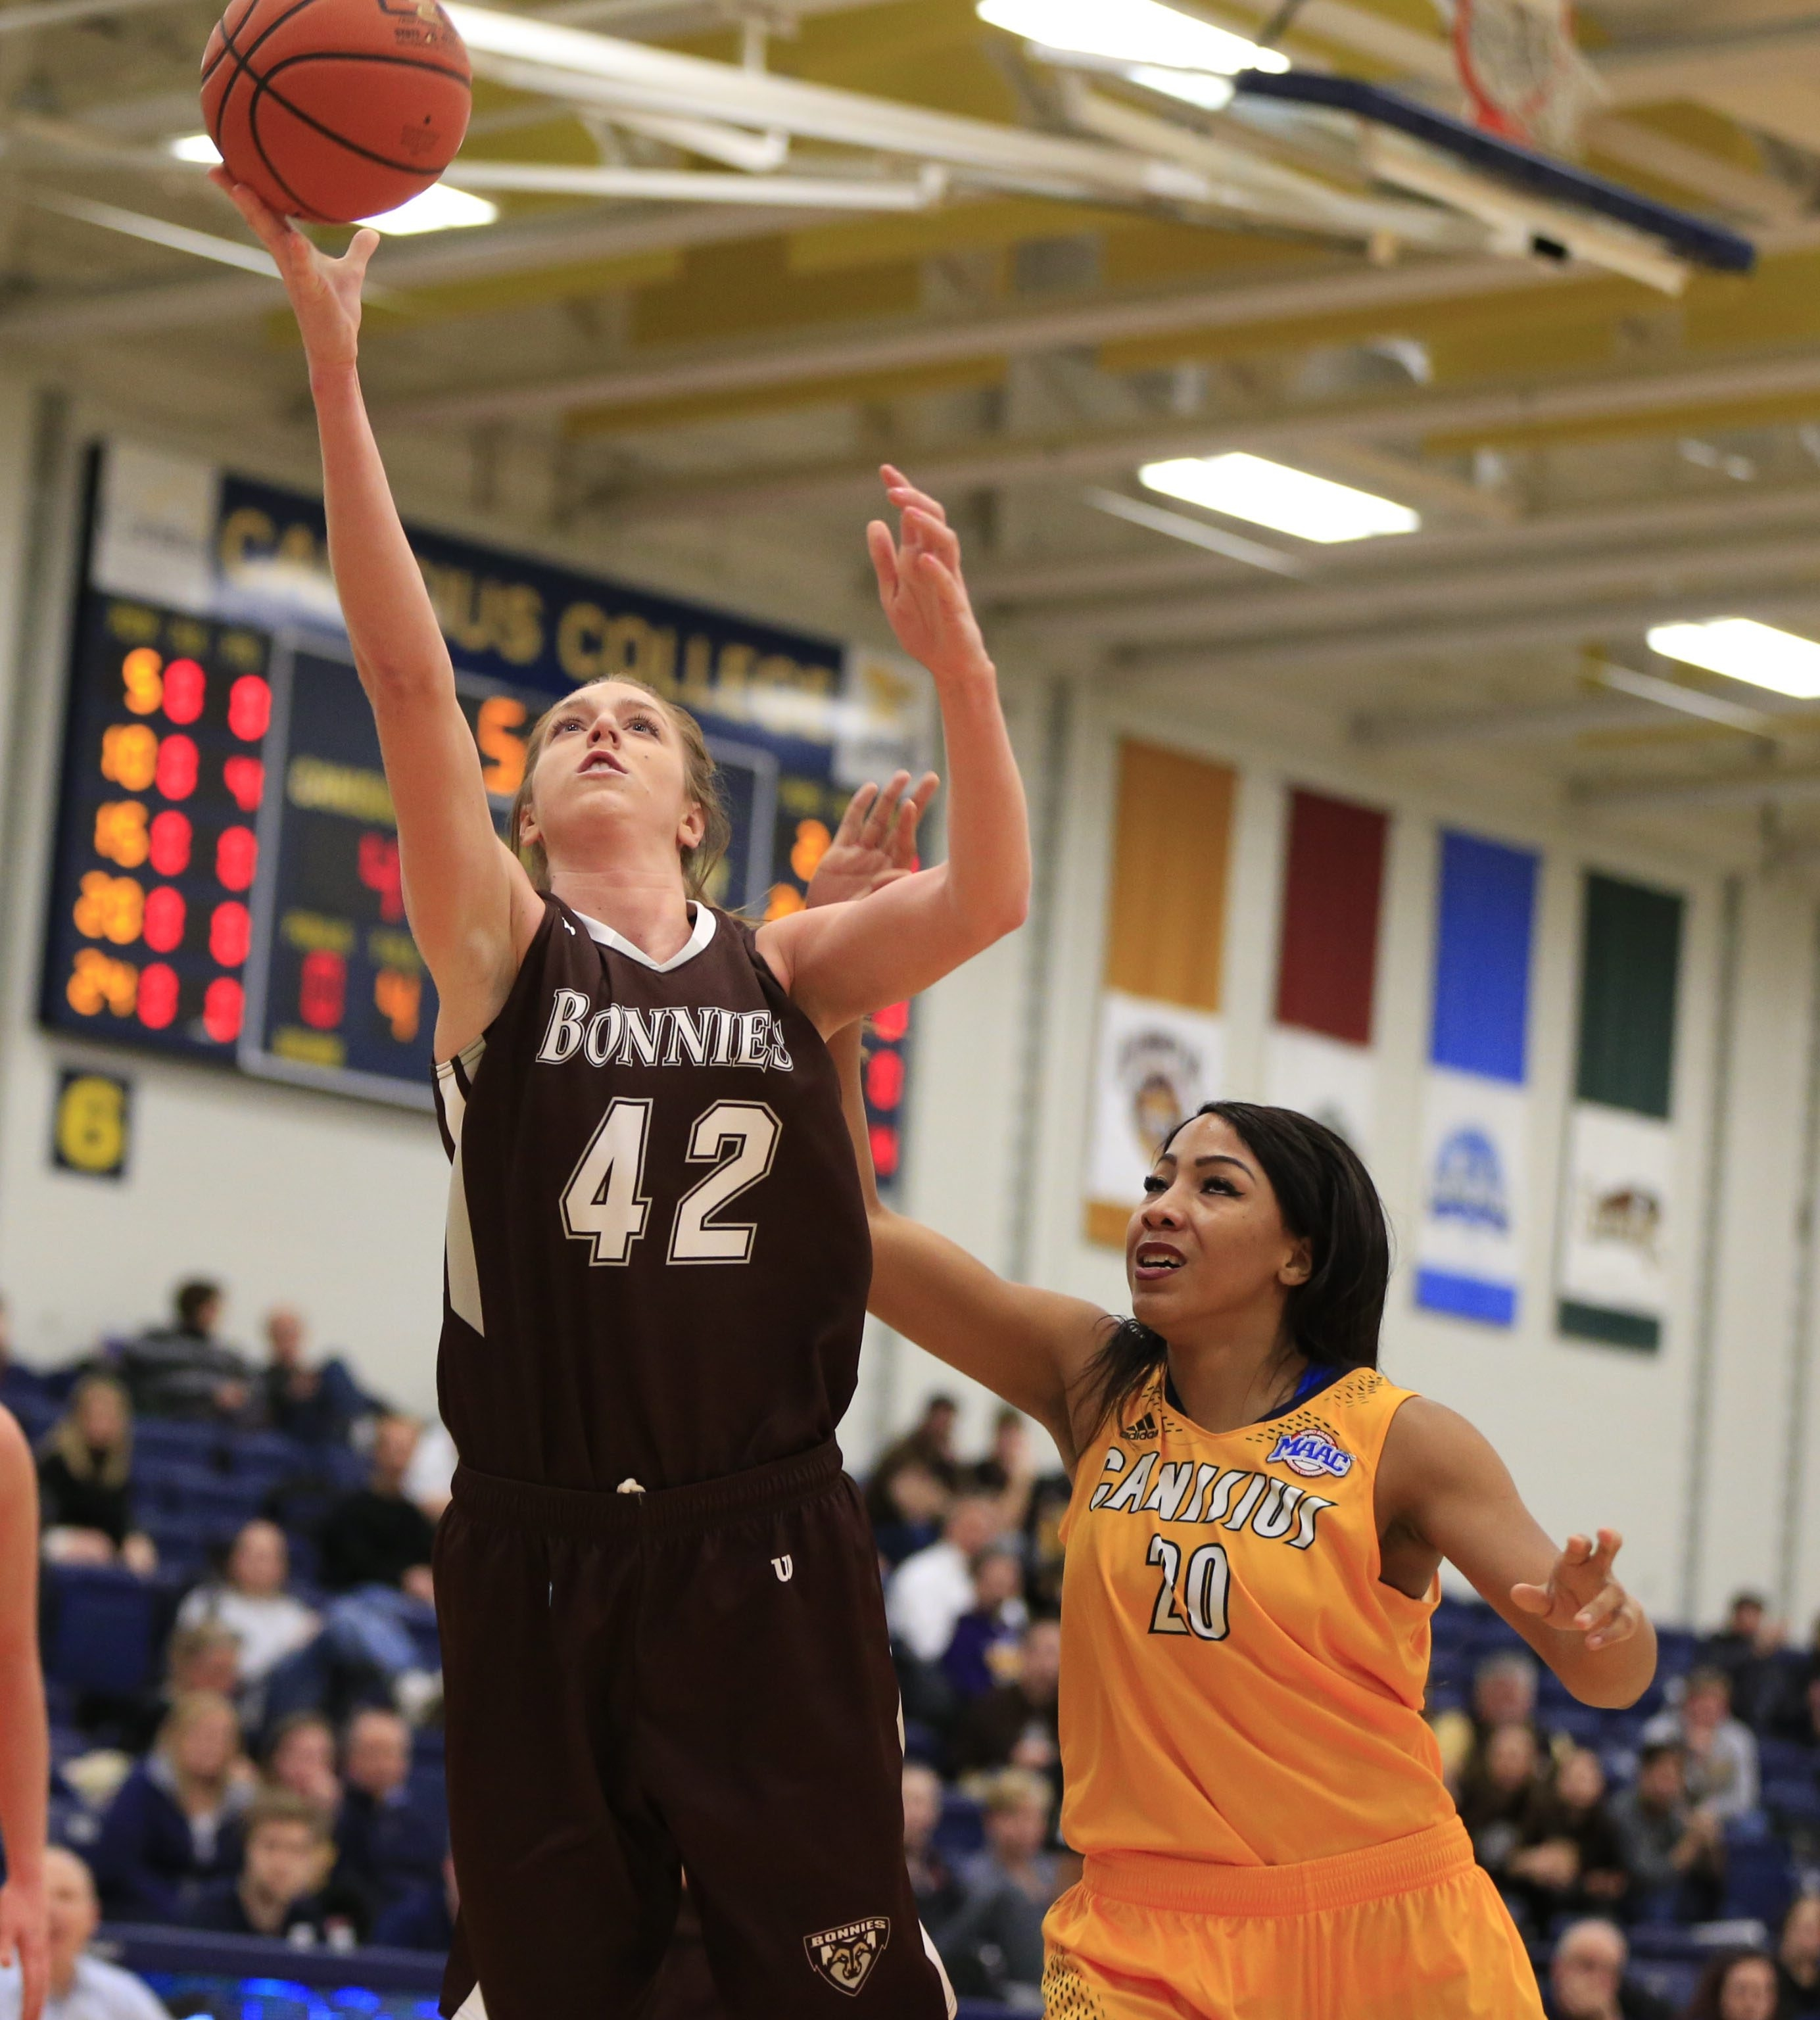 St. Bonaventure's Katie Healy drives past Jasmine Mungo to score in the first half Tuesday night at the Koessler Center.